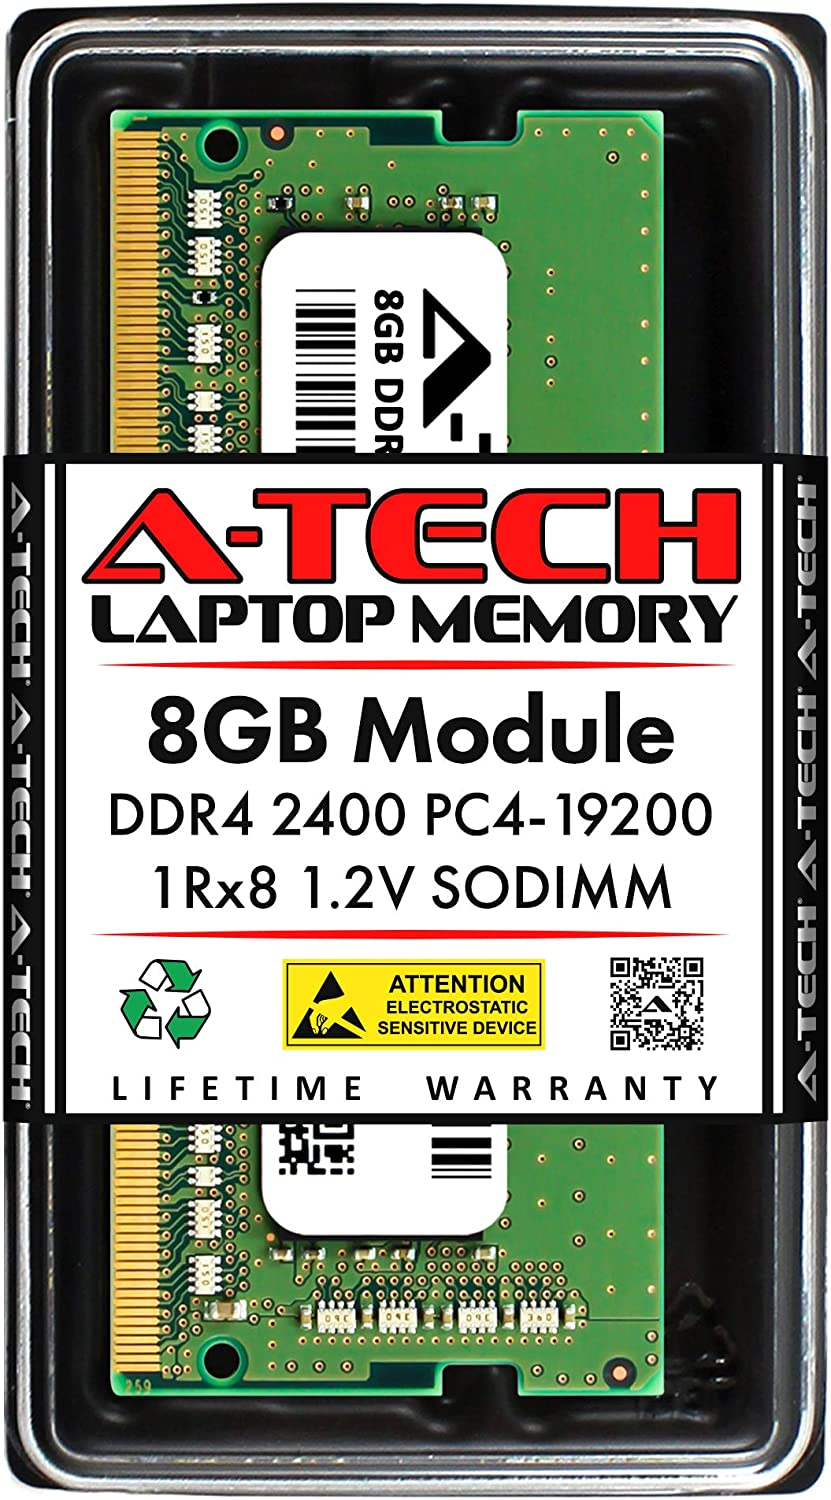 A-Tech 8GB DDR4 2400MHz SODIMM PC4-19200 1Rx8 Single Rank 260-Pin CL17 1.2V Non-ECC Unbuffered Notebook Laptop RAM Memory Upgrade Module